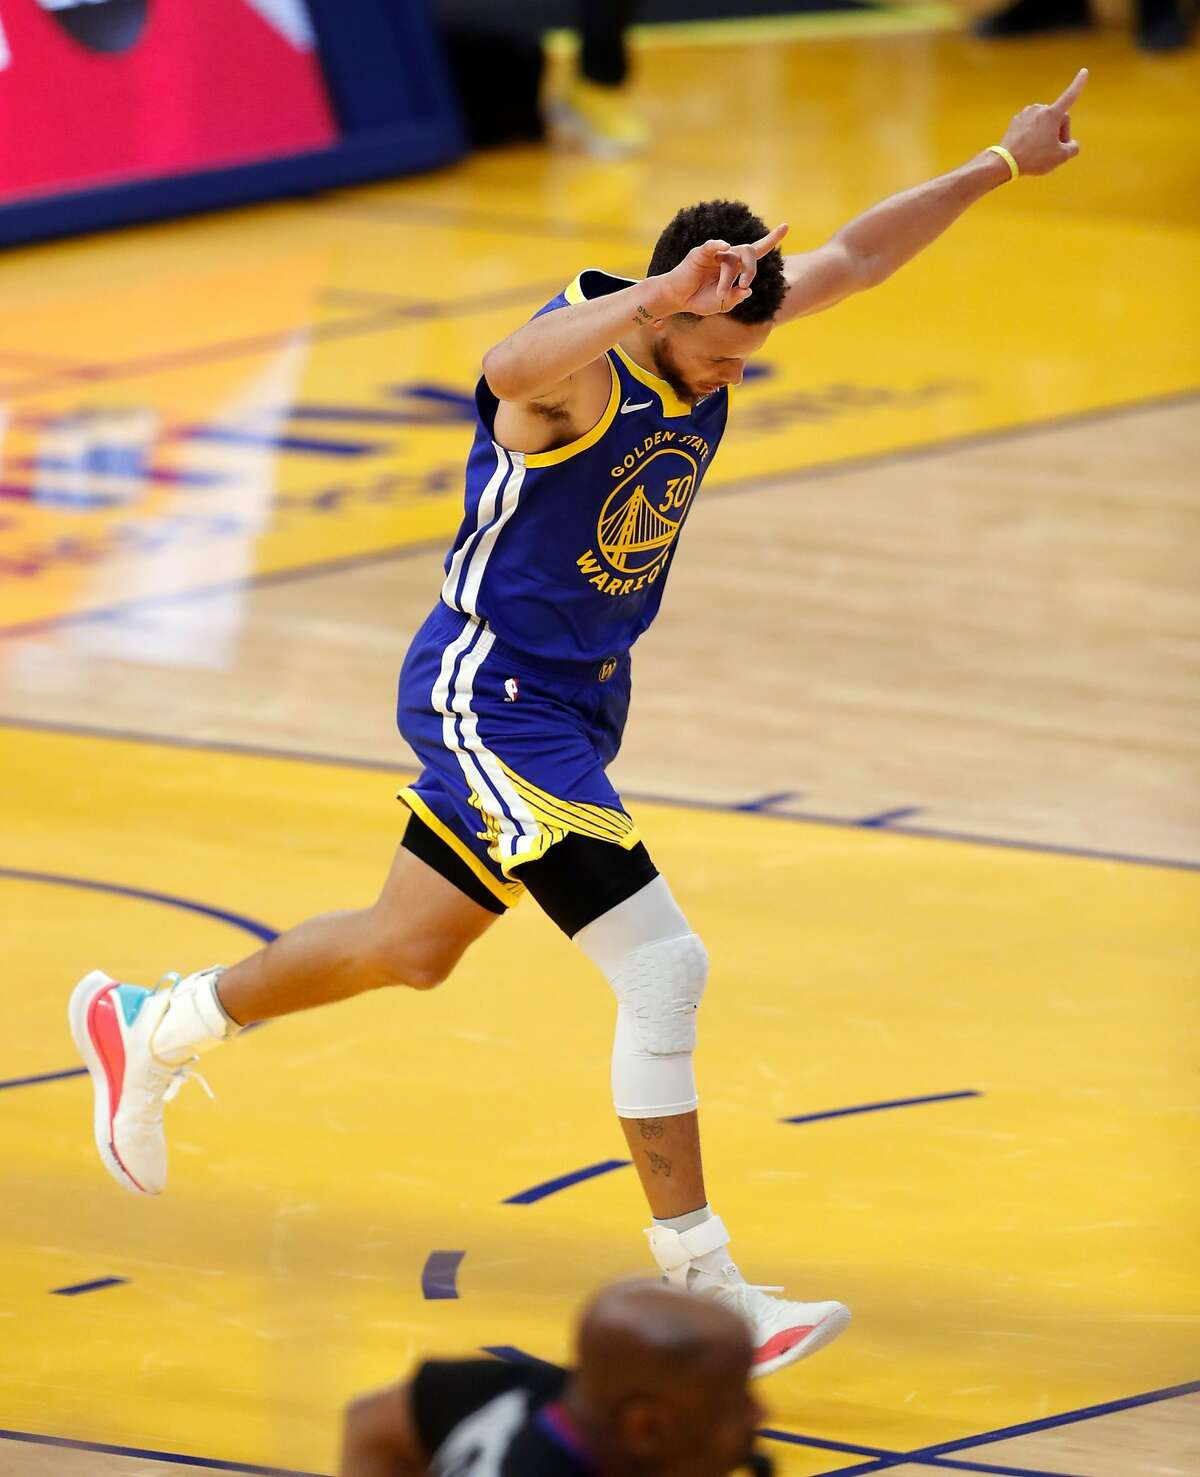 Golden State Warriors' Stephen Curry reacts to passing Wilt Chamberlain as franchise's leading career score after scoring a 1st quarter basket against Denver Nuggets during 1st quarter of NBA game at Chase Center in San Francisco, Calif., on Monday, April 12, 2021.